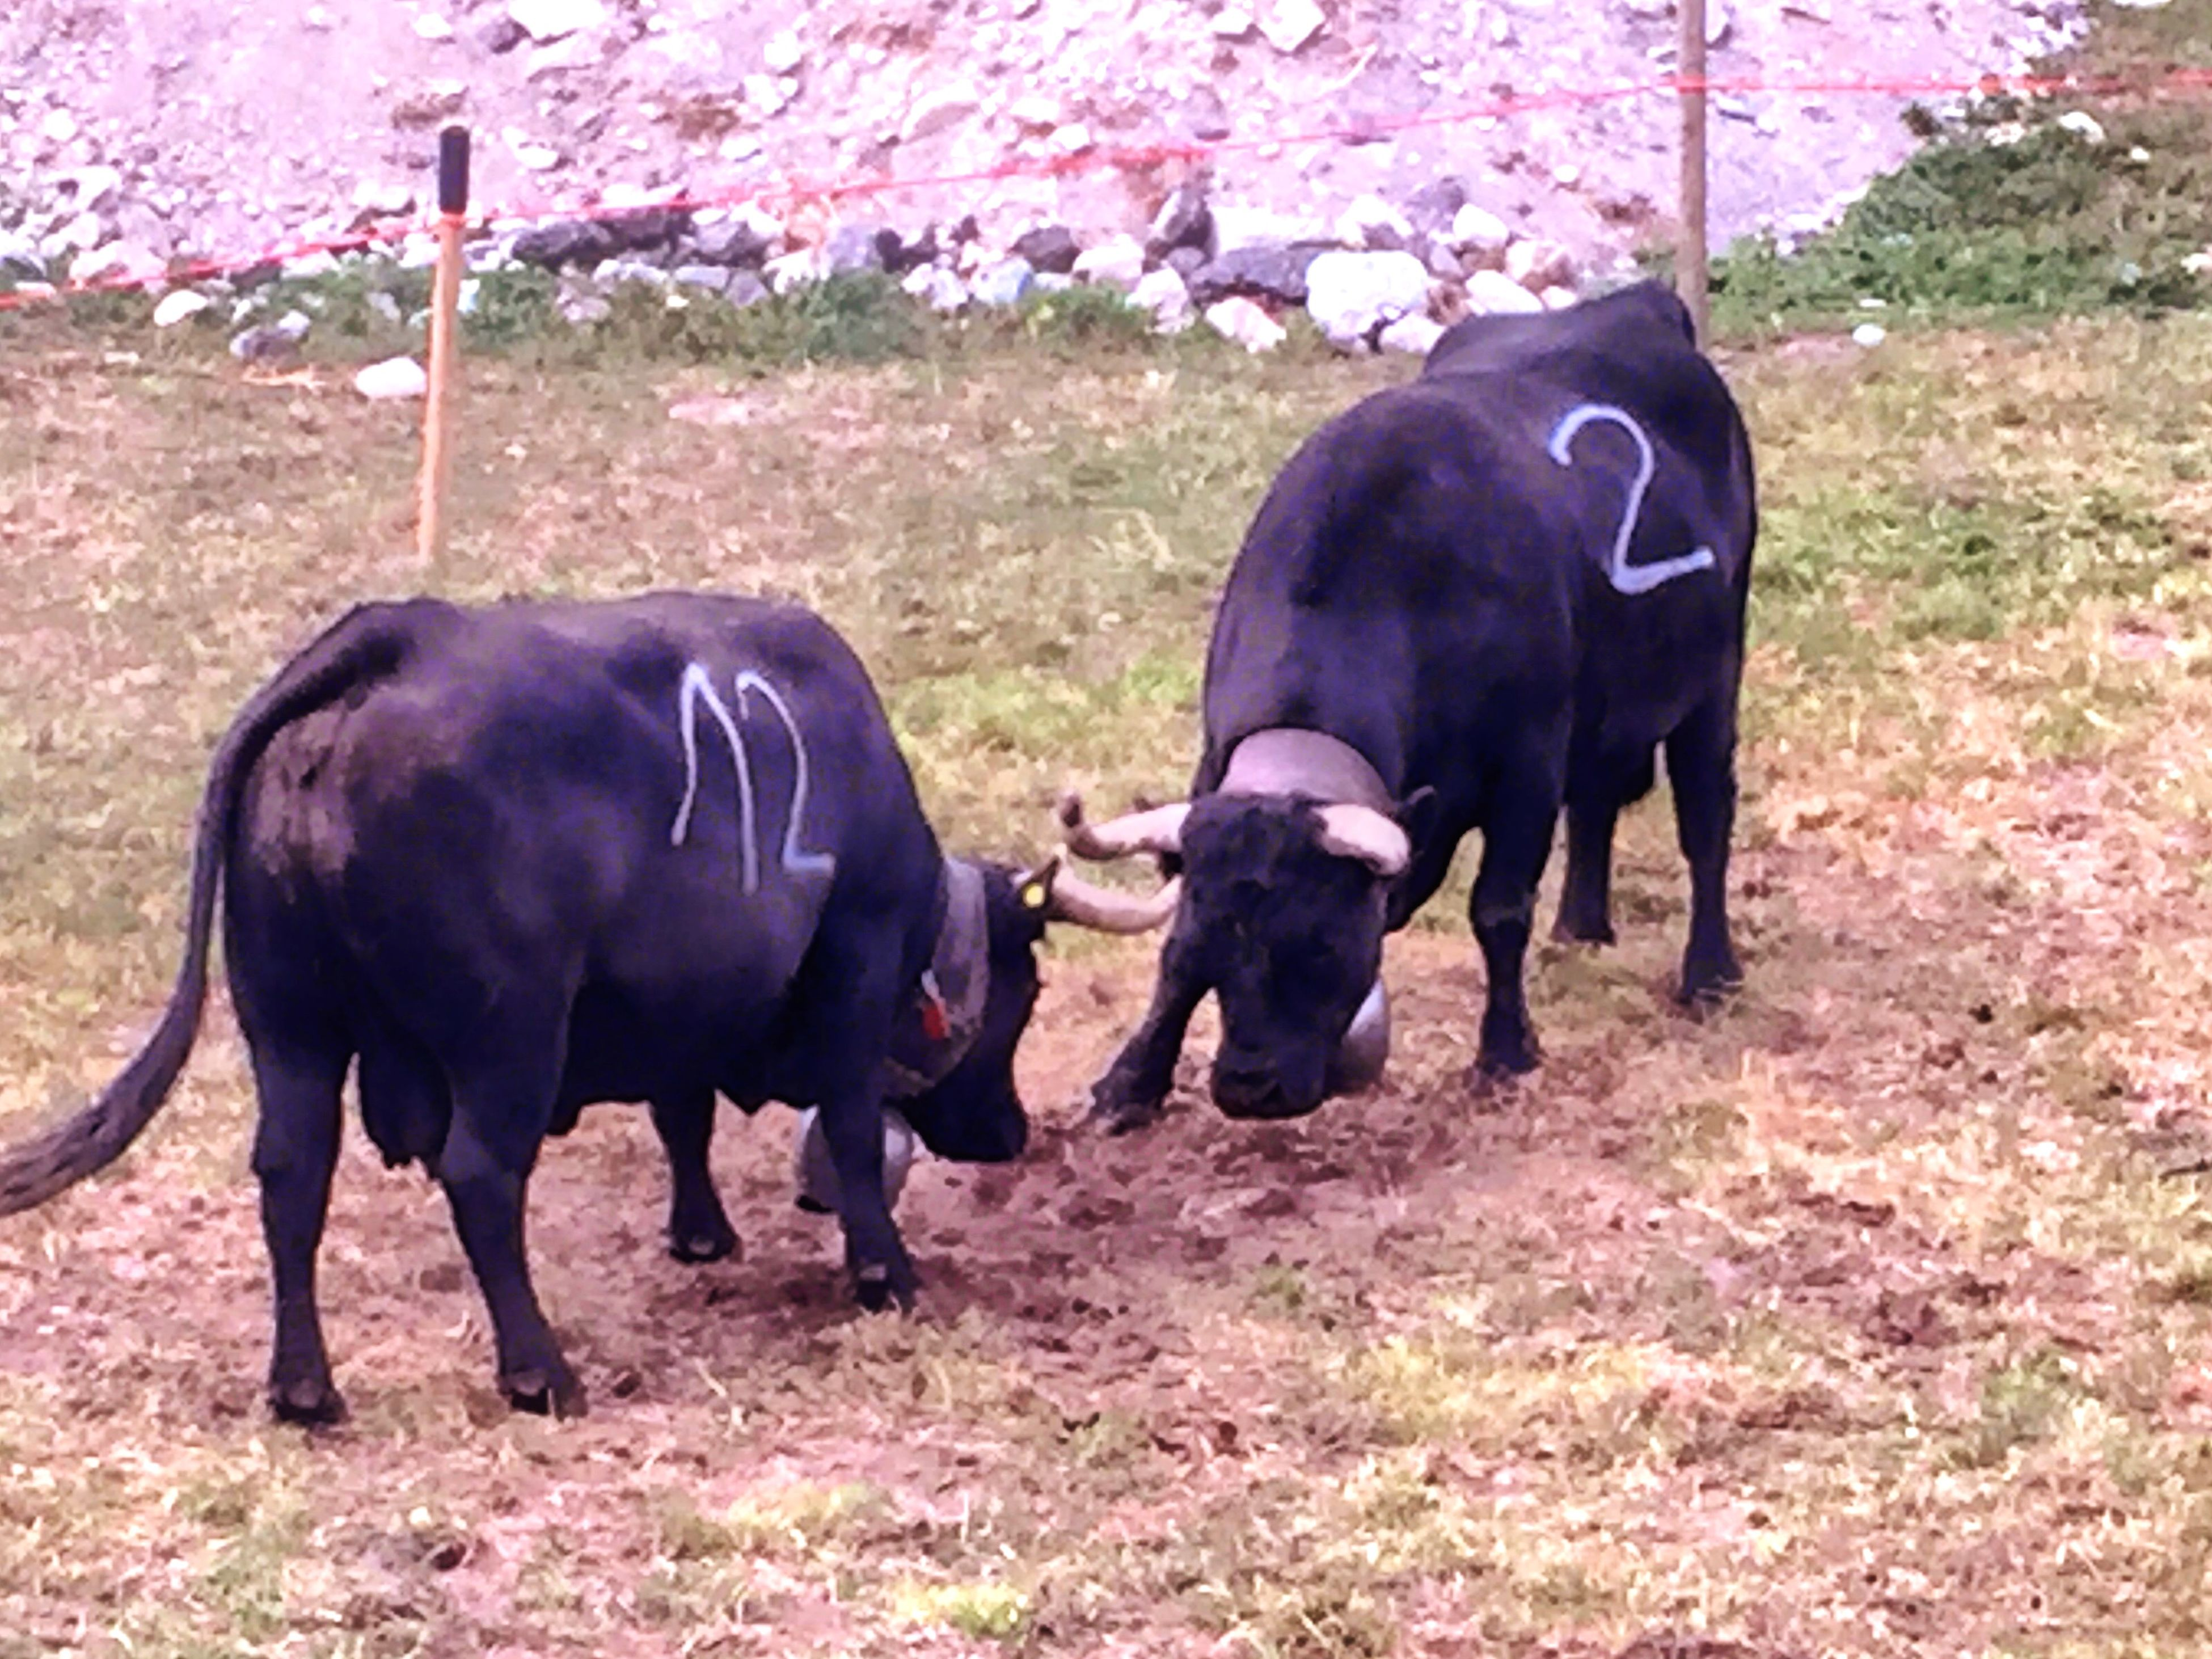 animal themes, domestic animals, livestock, field, mammal, standing, two animals, grass, horse, full length, cow, togetherness, black color, day, outdoors, nature, herbivorous, three animals, domestic cattle, working animal